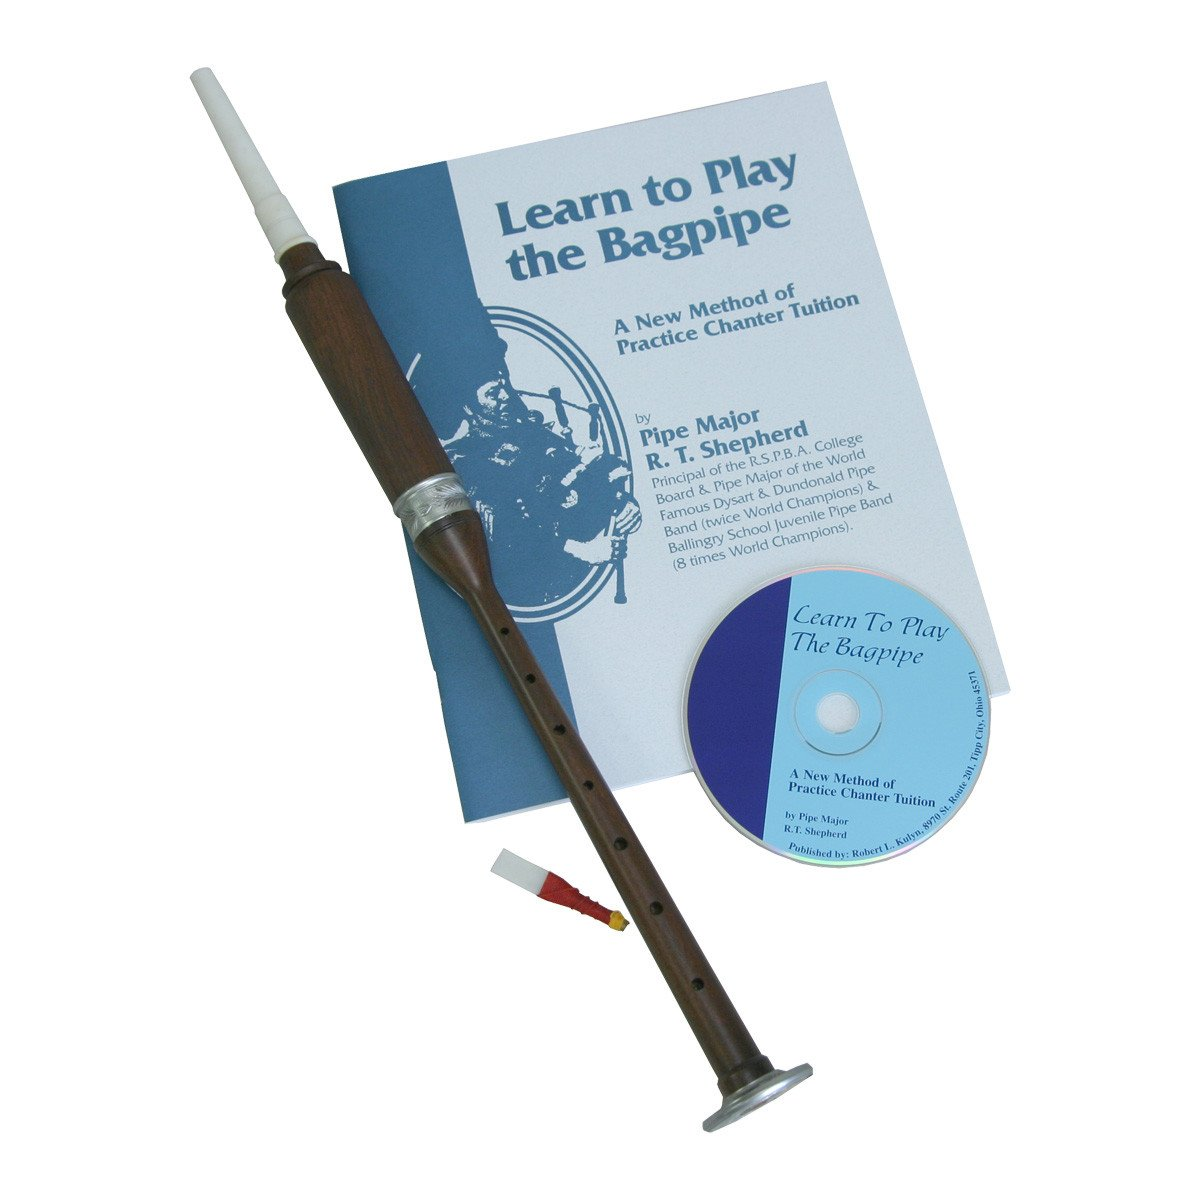 Roosebeck BAGL Sheesham Practice Chanter w/Book and CD